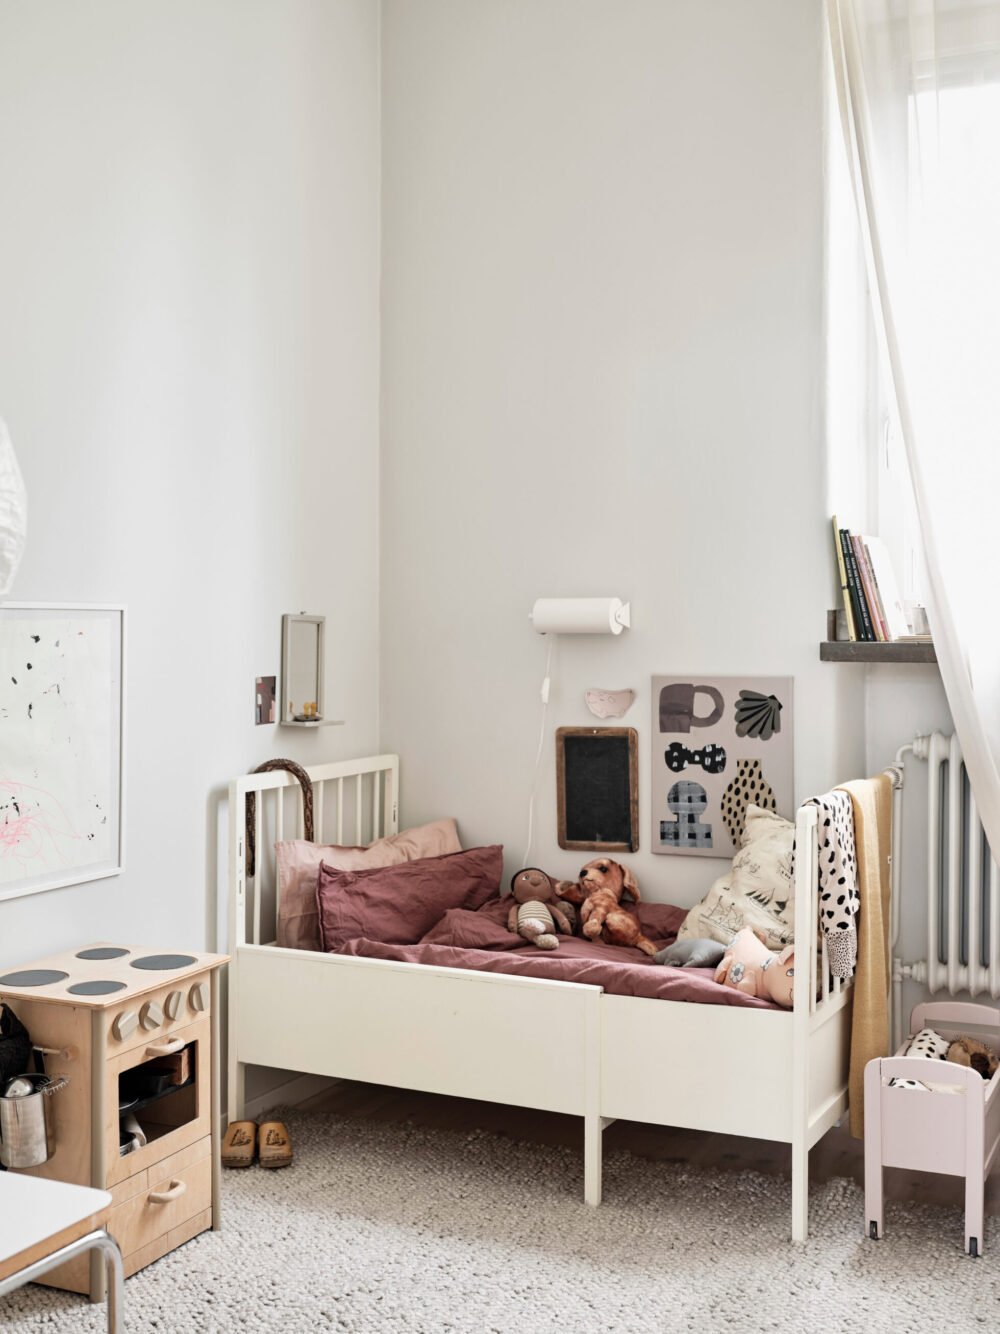 emilia-ilke-family home kids room